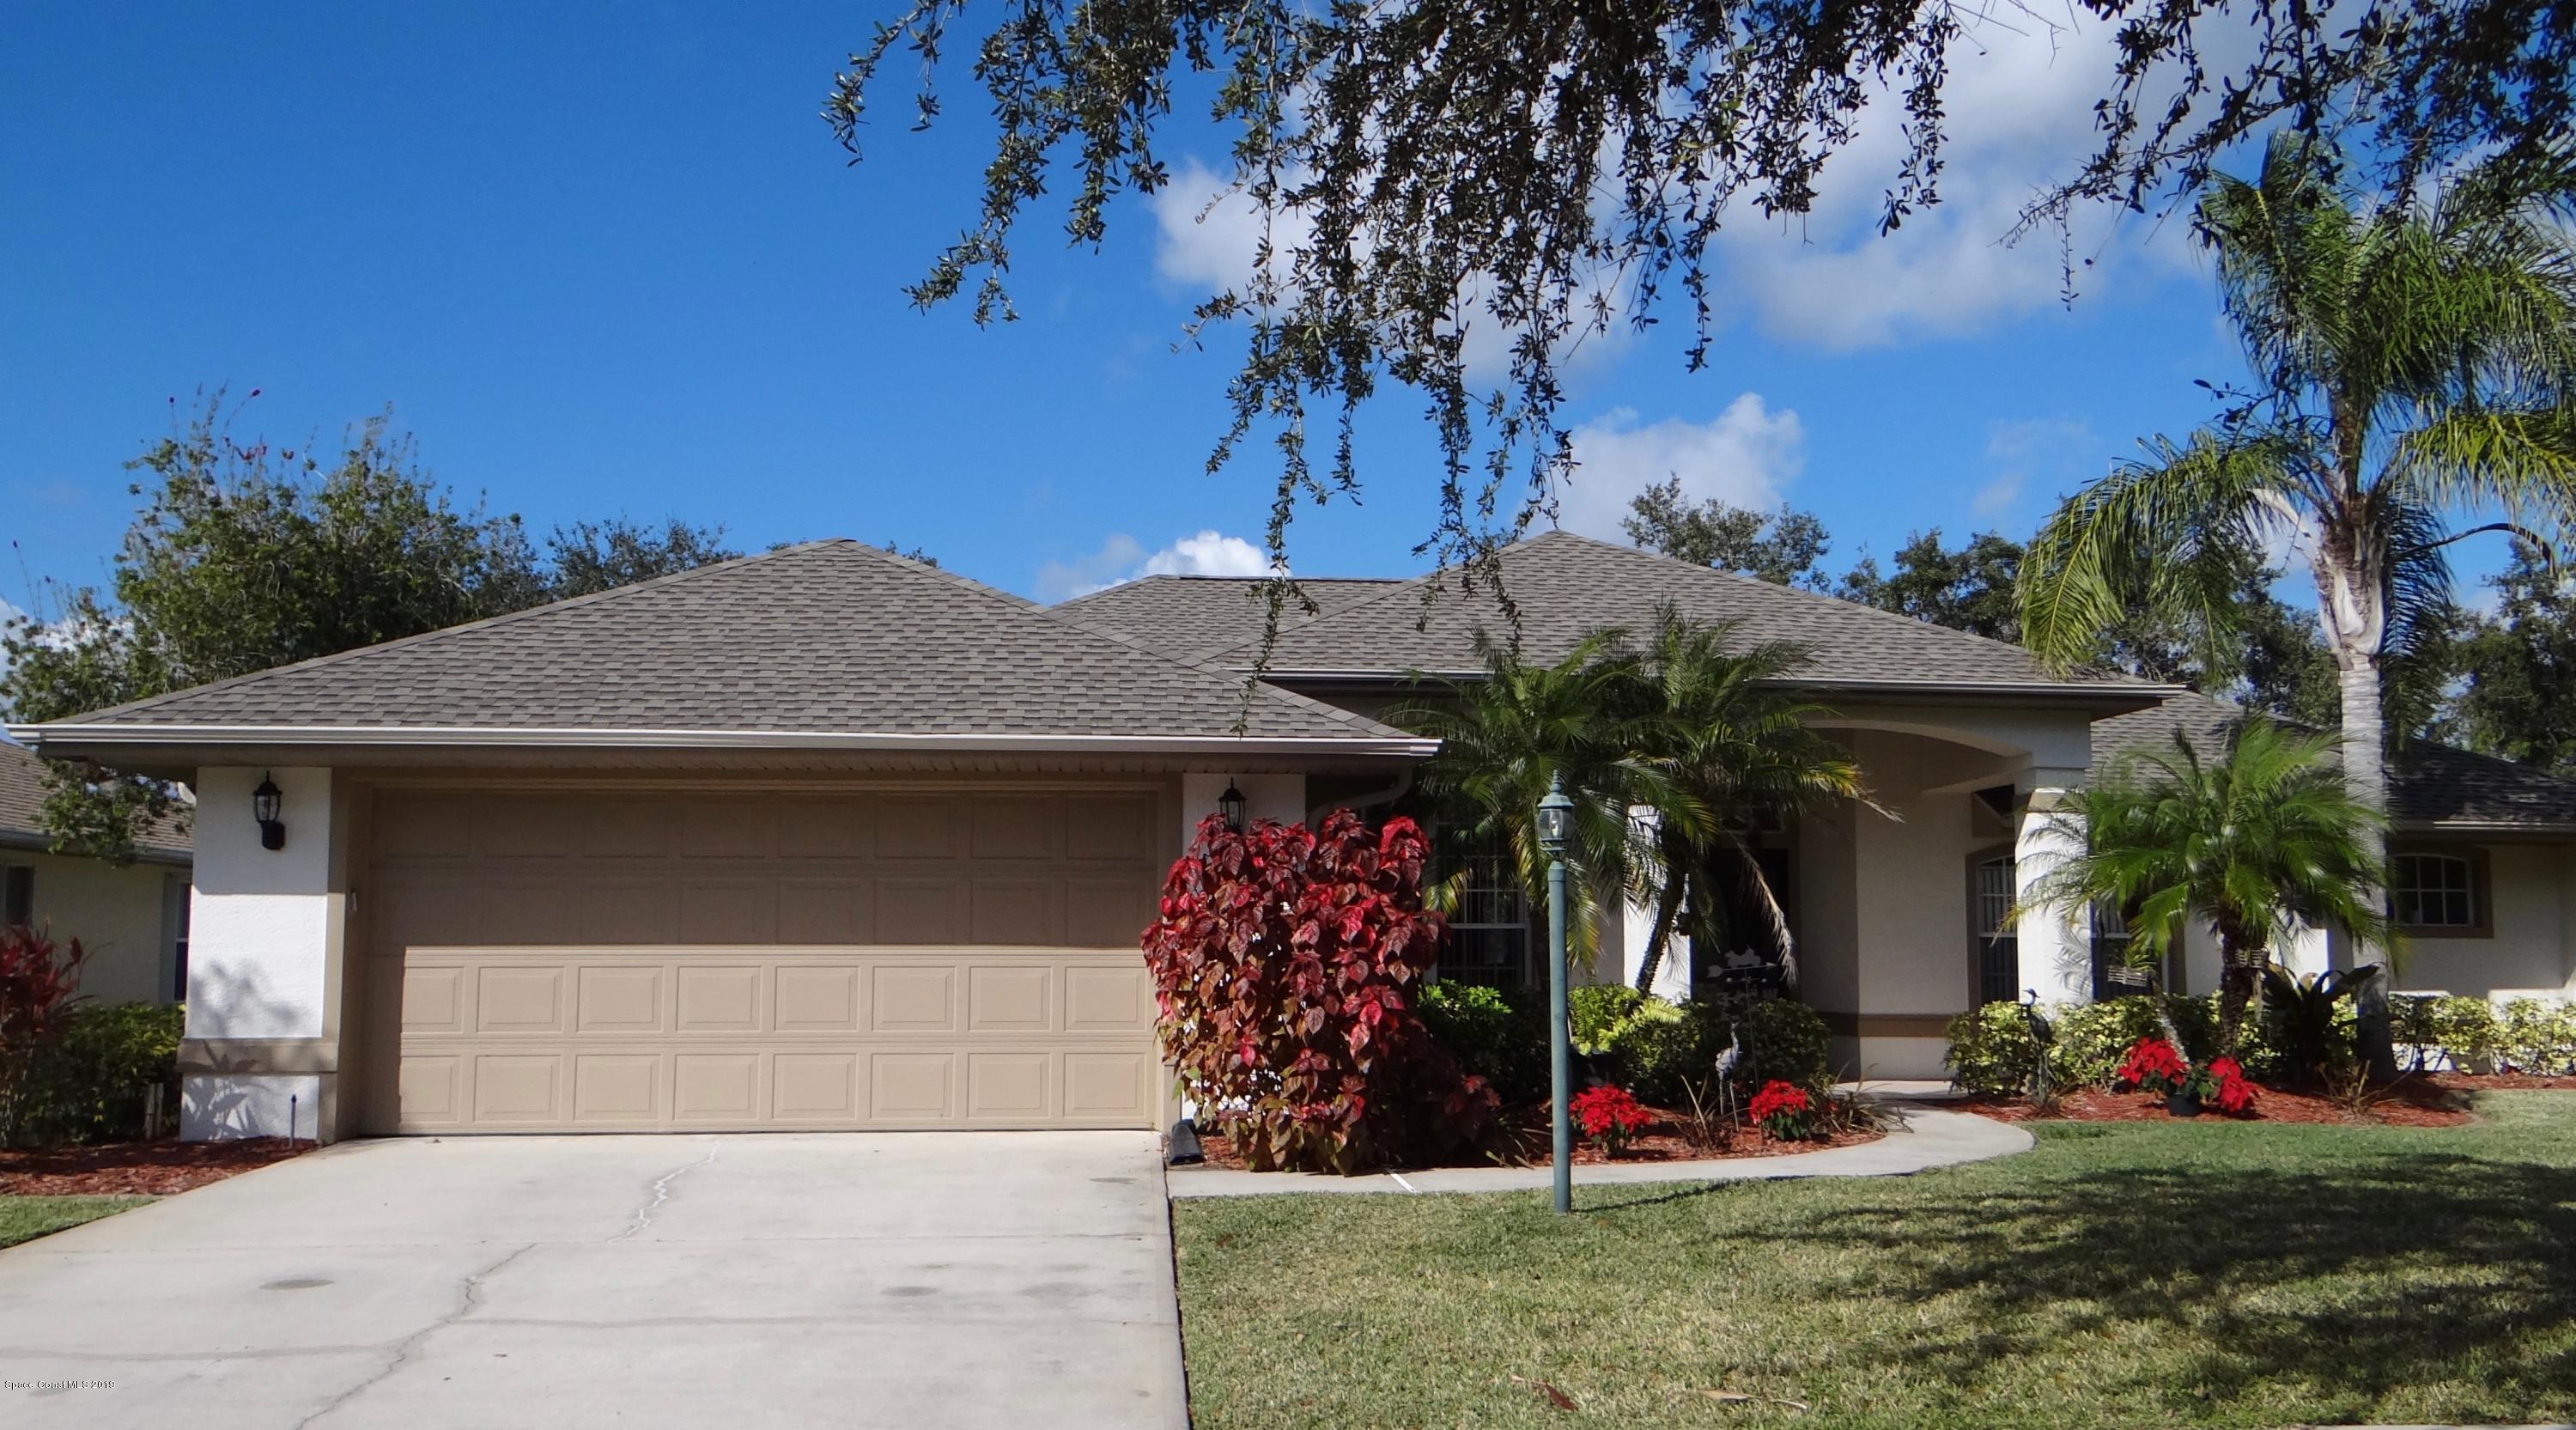 Single Family Homes for Sale at 941 Gardenbrook Palm Bay, Florida 32909 United States